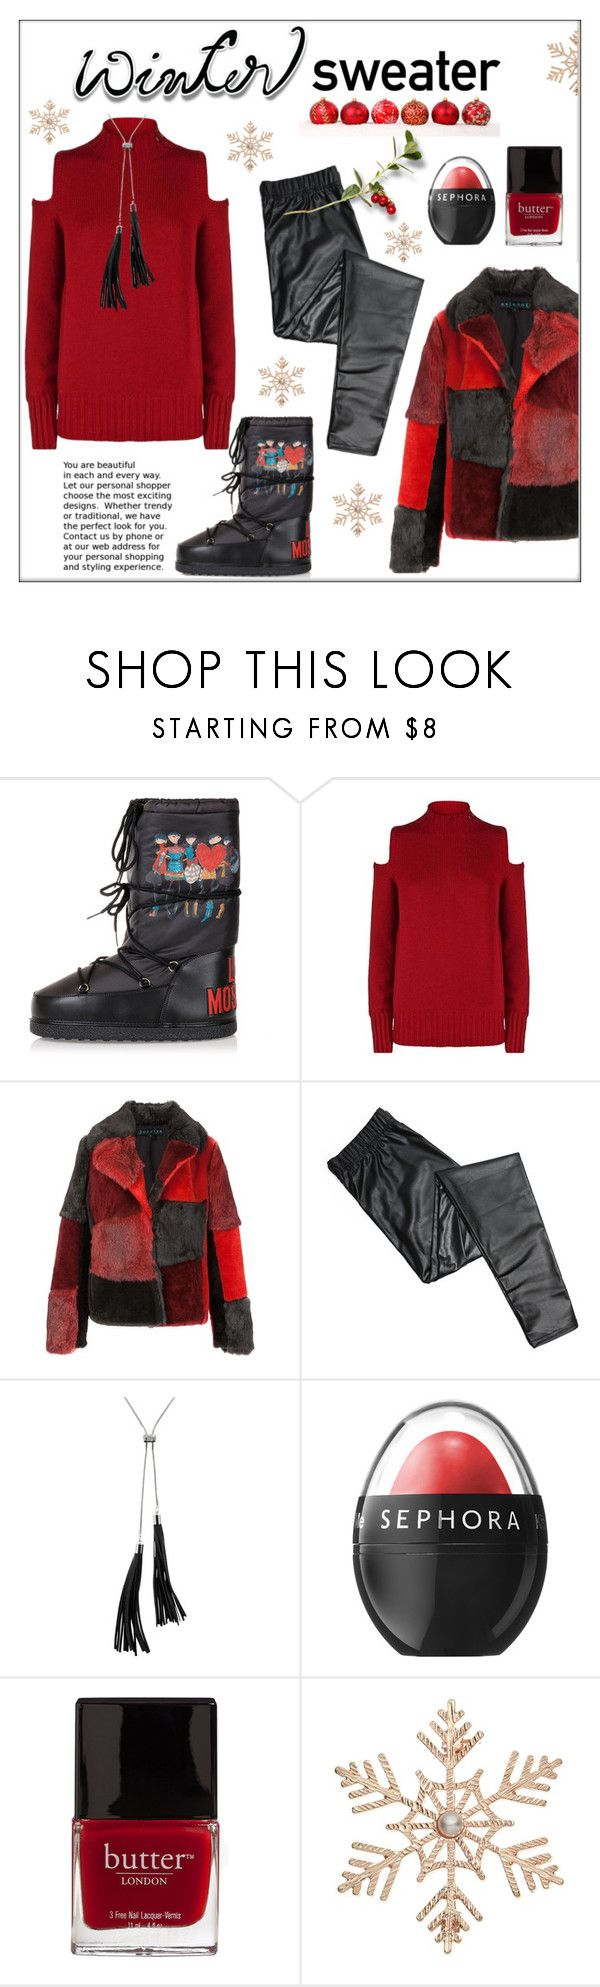 """""""Sweater Weather"""" by pat912 ❤ liked on Polyvore featuring Moschino, Pinko, Jocelyn, White House Black Market, Sephora Collection, Butter London, John Lewis, polyvoreeditorial and wintersweater"""